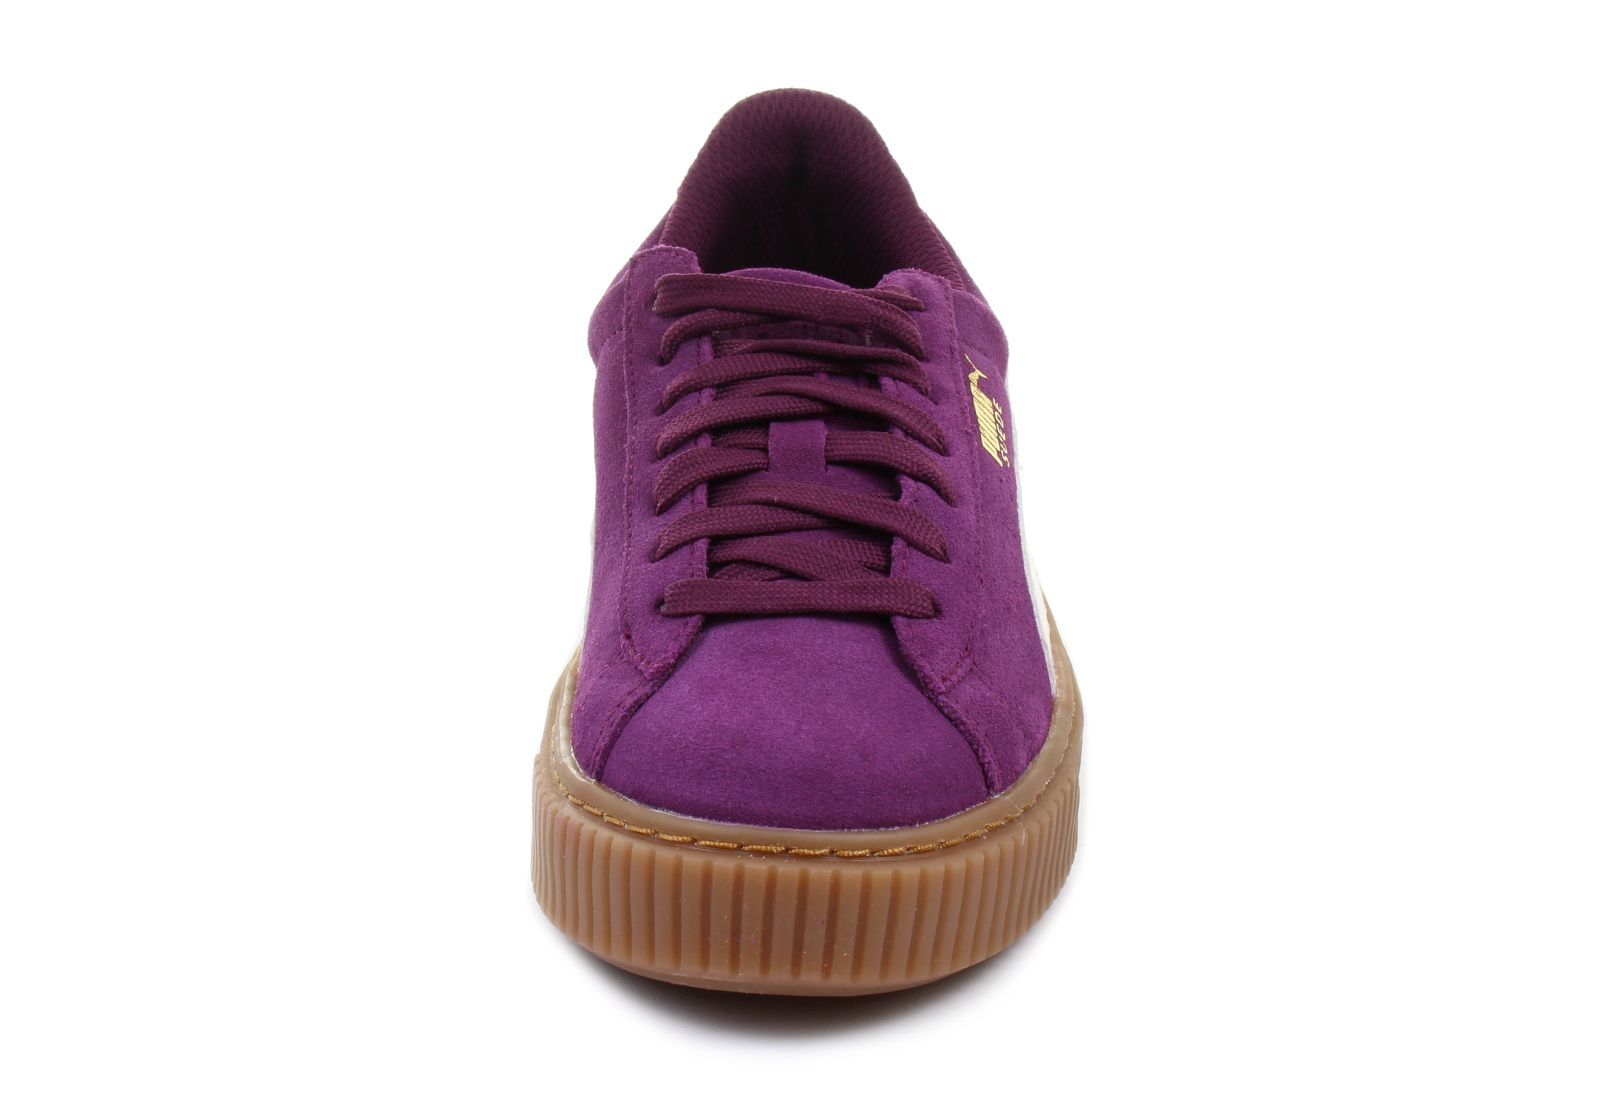 buy online 8e5ff 1a1a1 Puma Shoes - Suede Platform Snake Jr - 36390603-pur - Online shop for  sneakers, shoes and boots